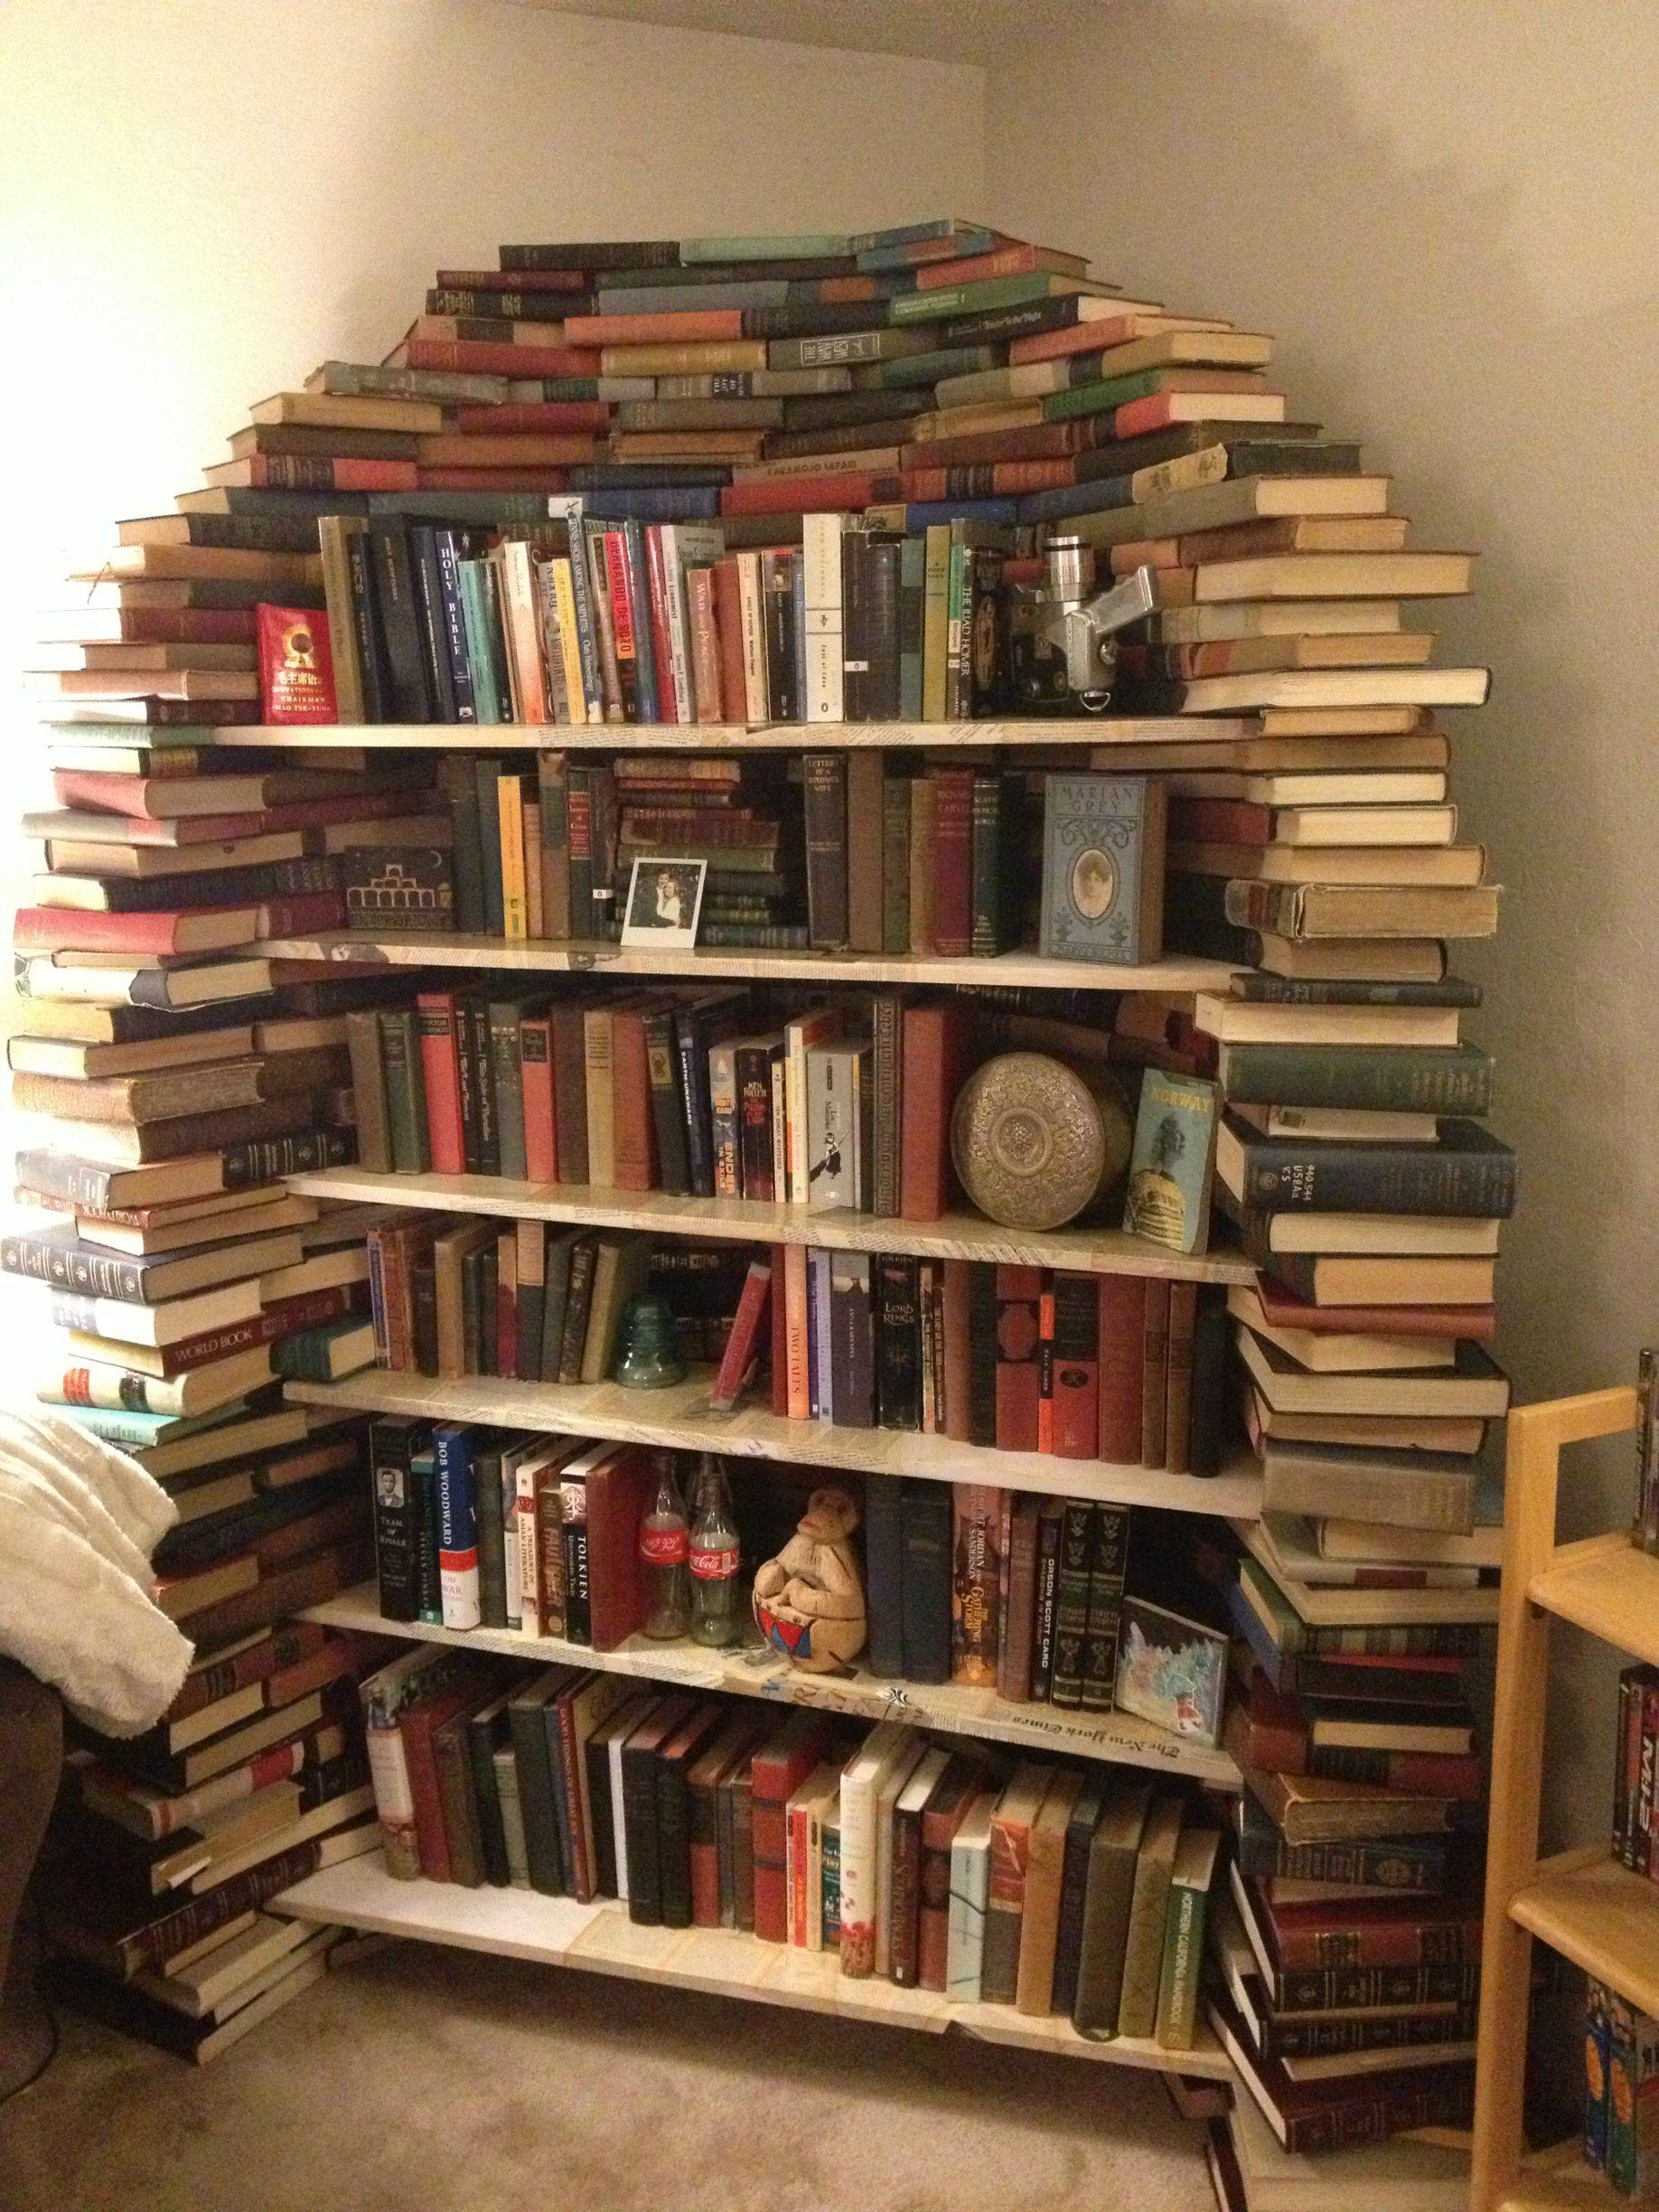 Drawn bookcase funny Bookshelf Books out made This